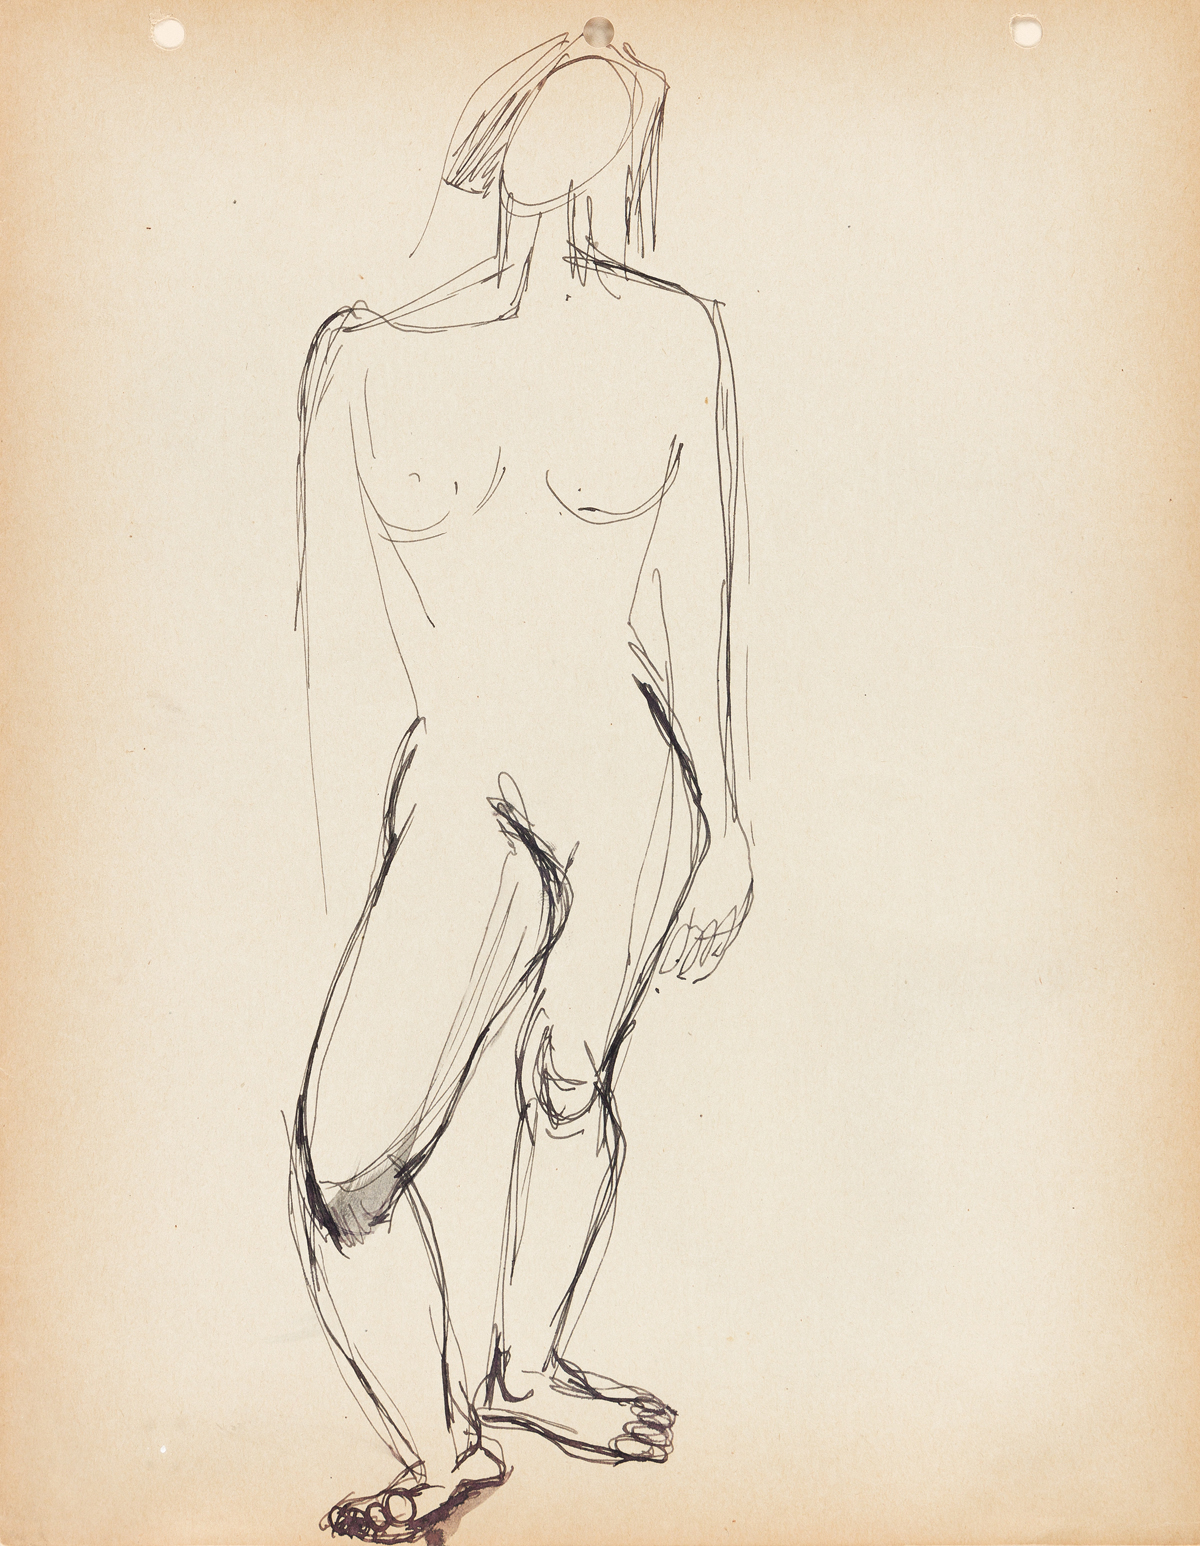 NORMAN LEWIS (1917 - 1979) Untitled (Female Nude).